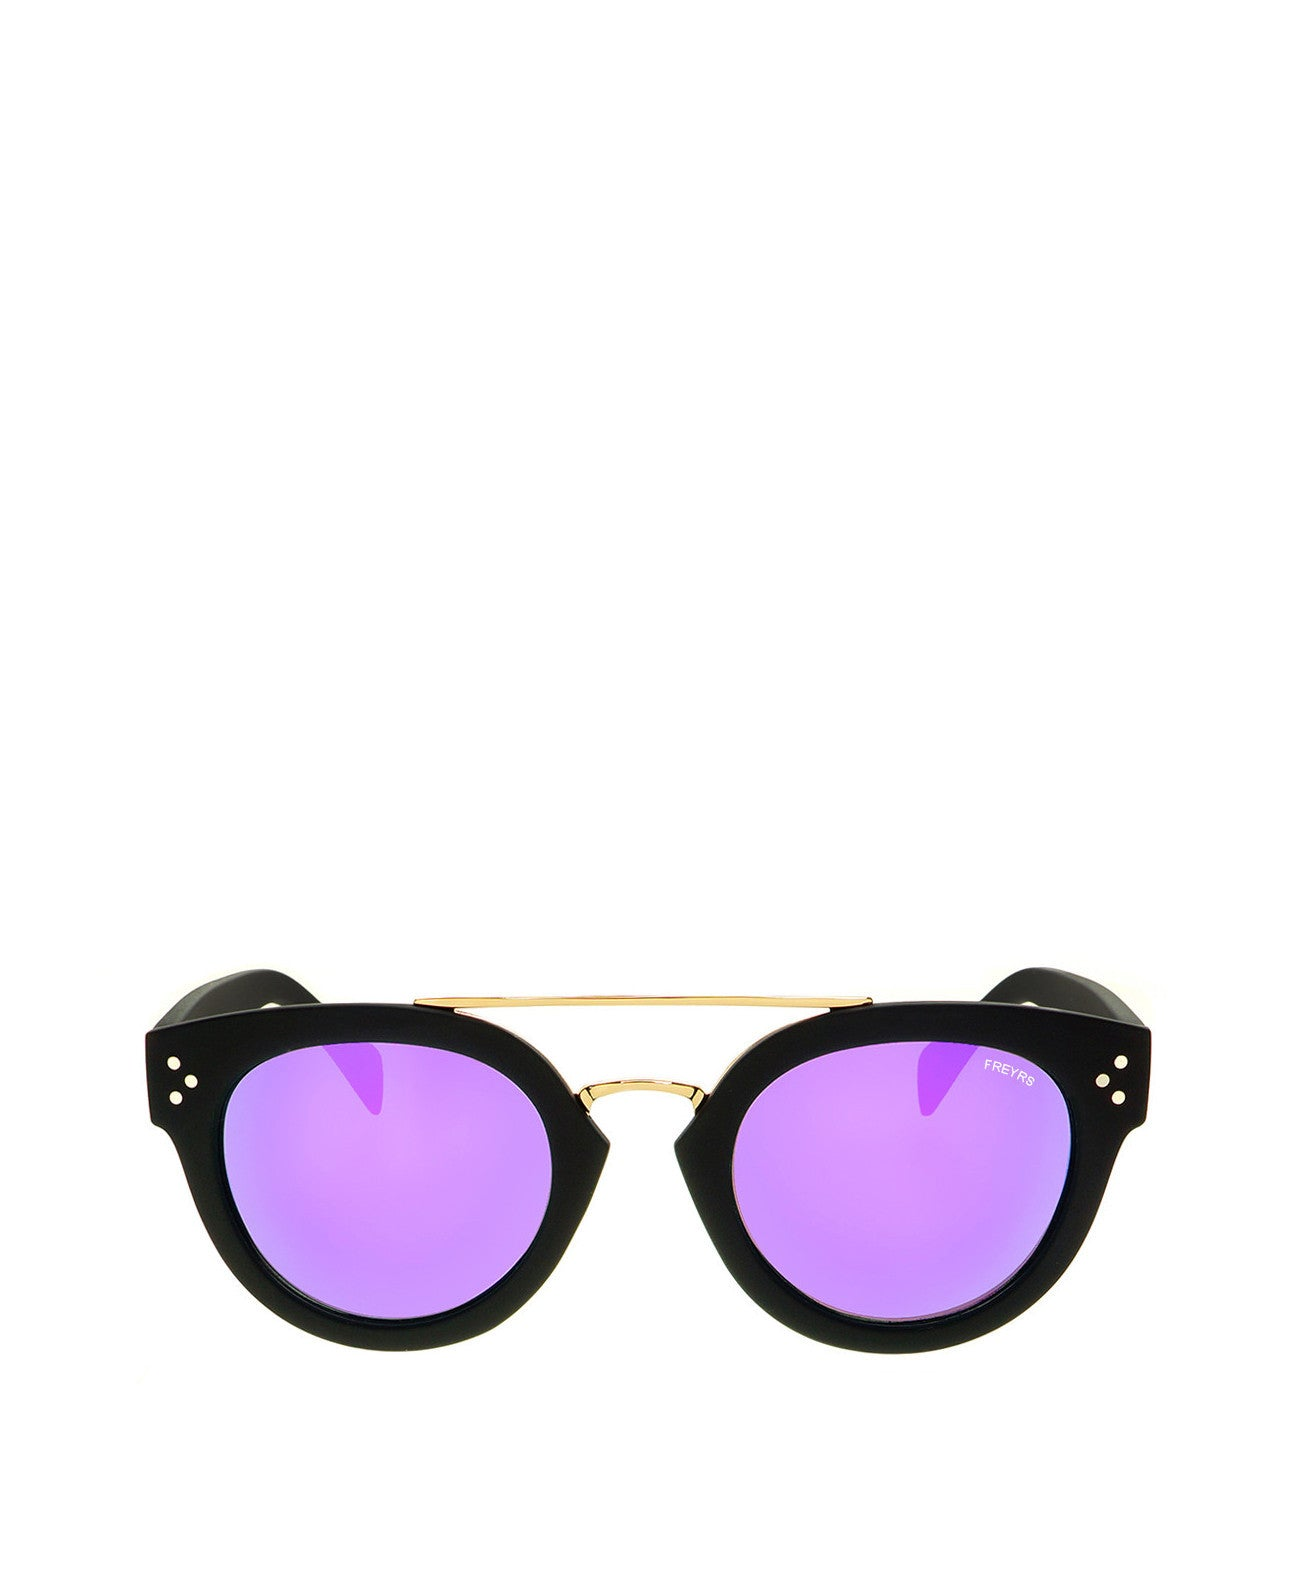 Deni-Blk/Purple Deni Round Sunglasses